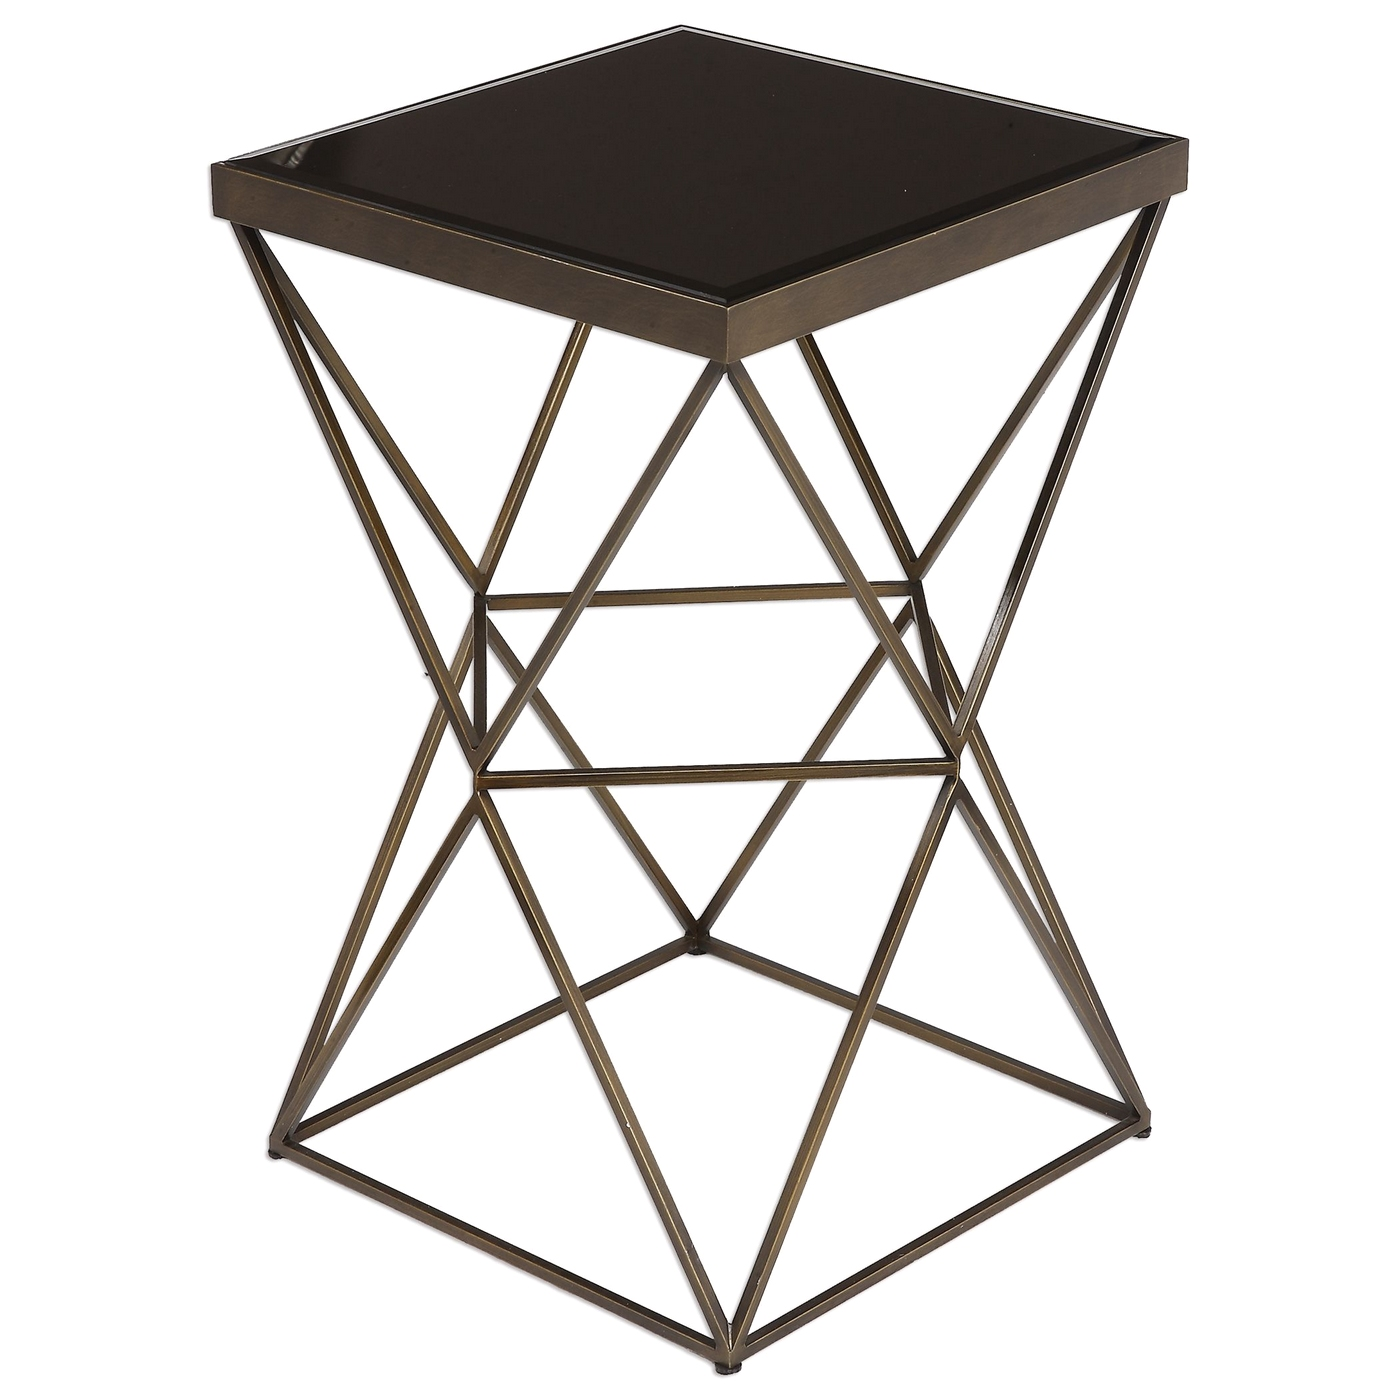 uberto caged frame accent table antique bronze finish steel antiqued with cage and beveled black glass top loading hairpin leg bedside round silver coffee outdoor furniture